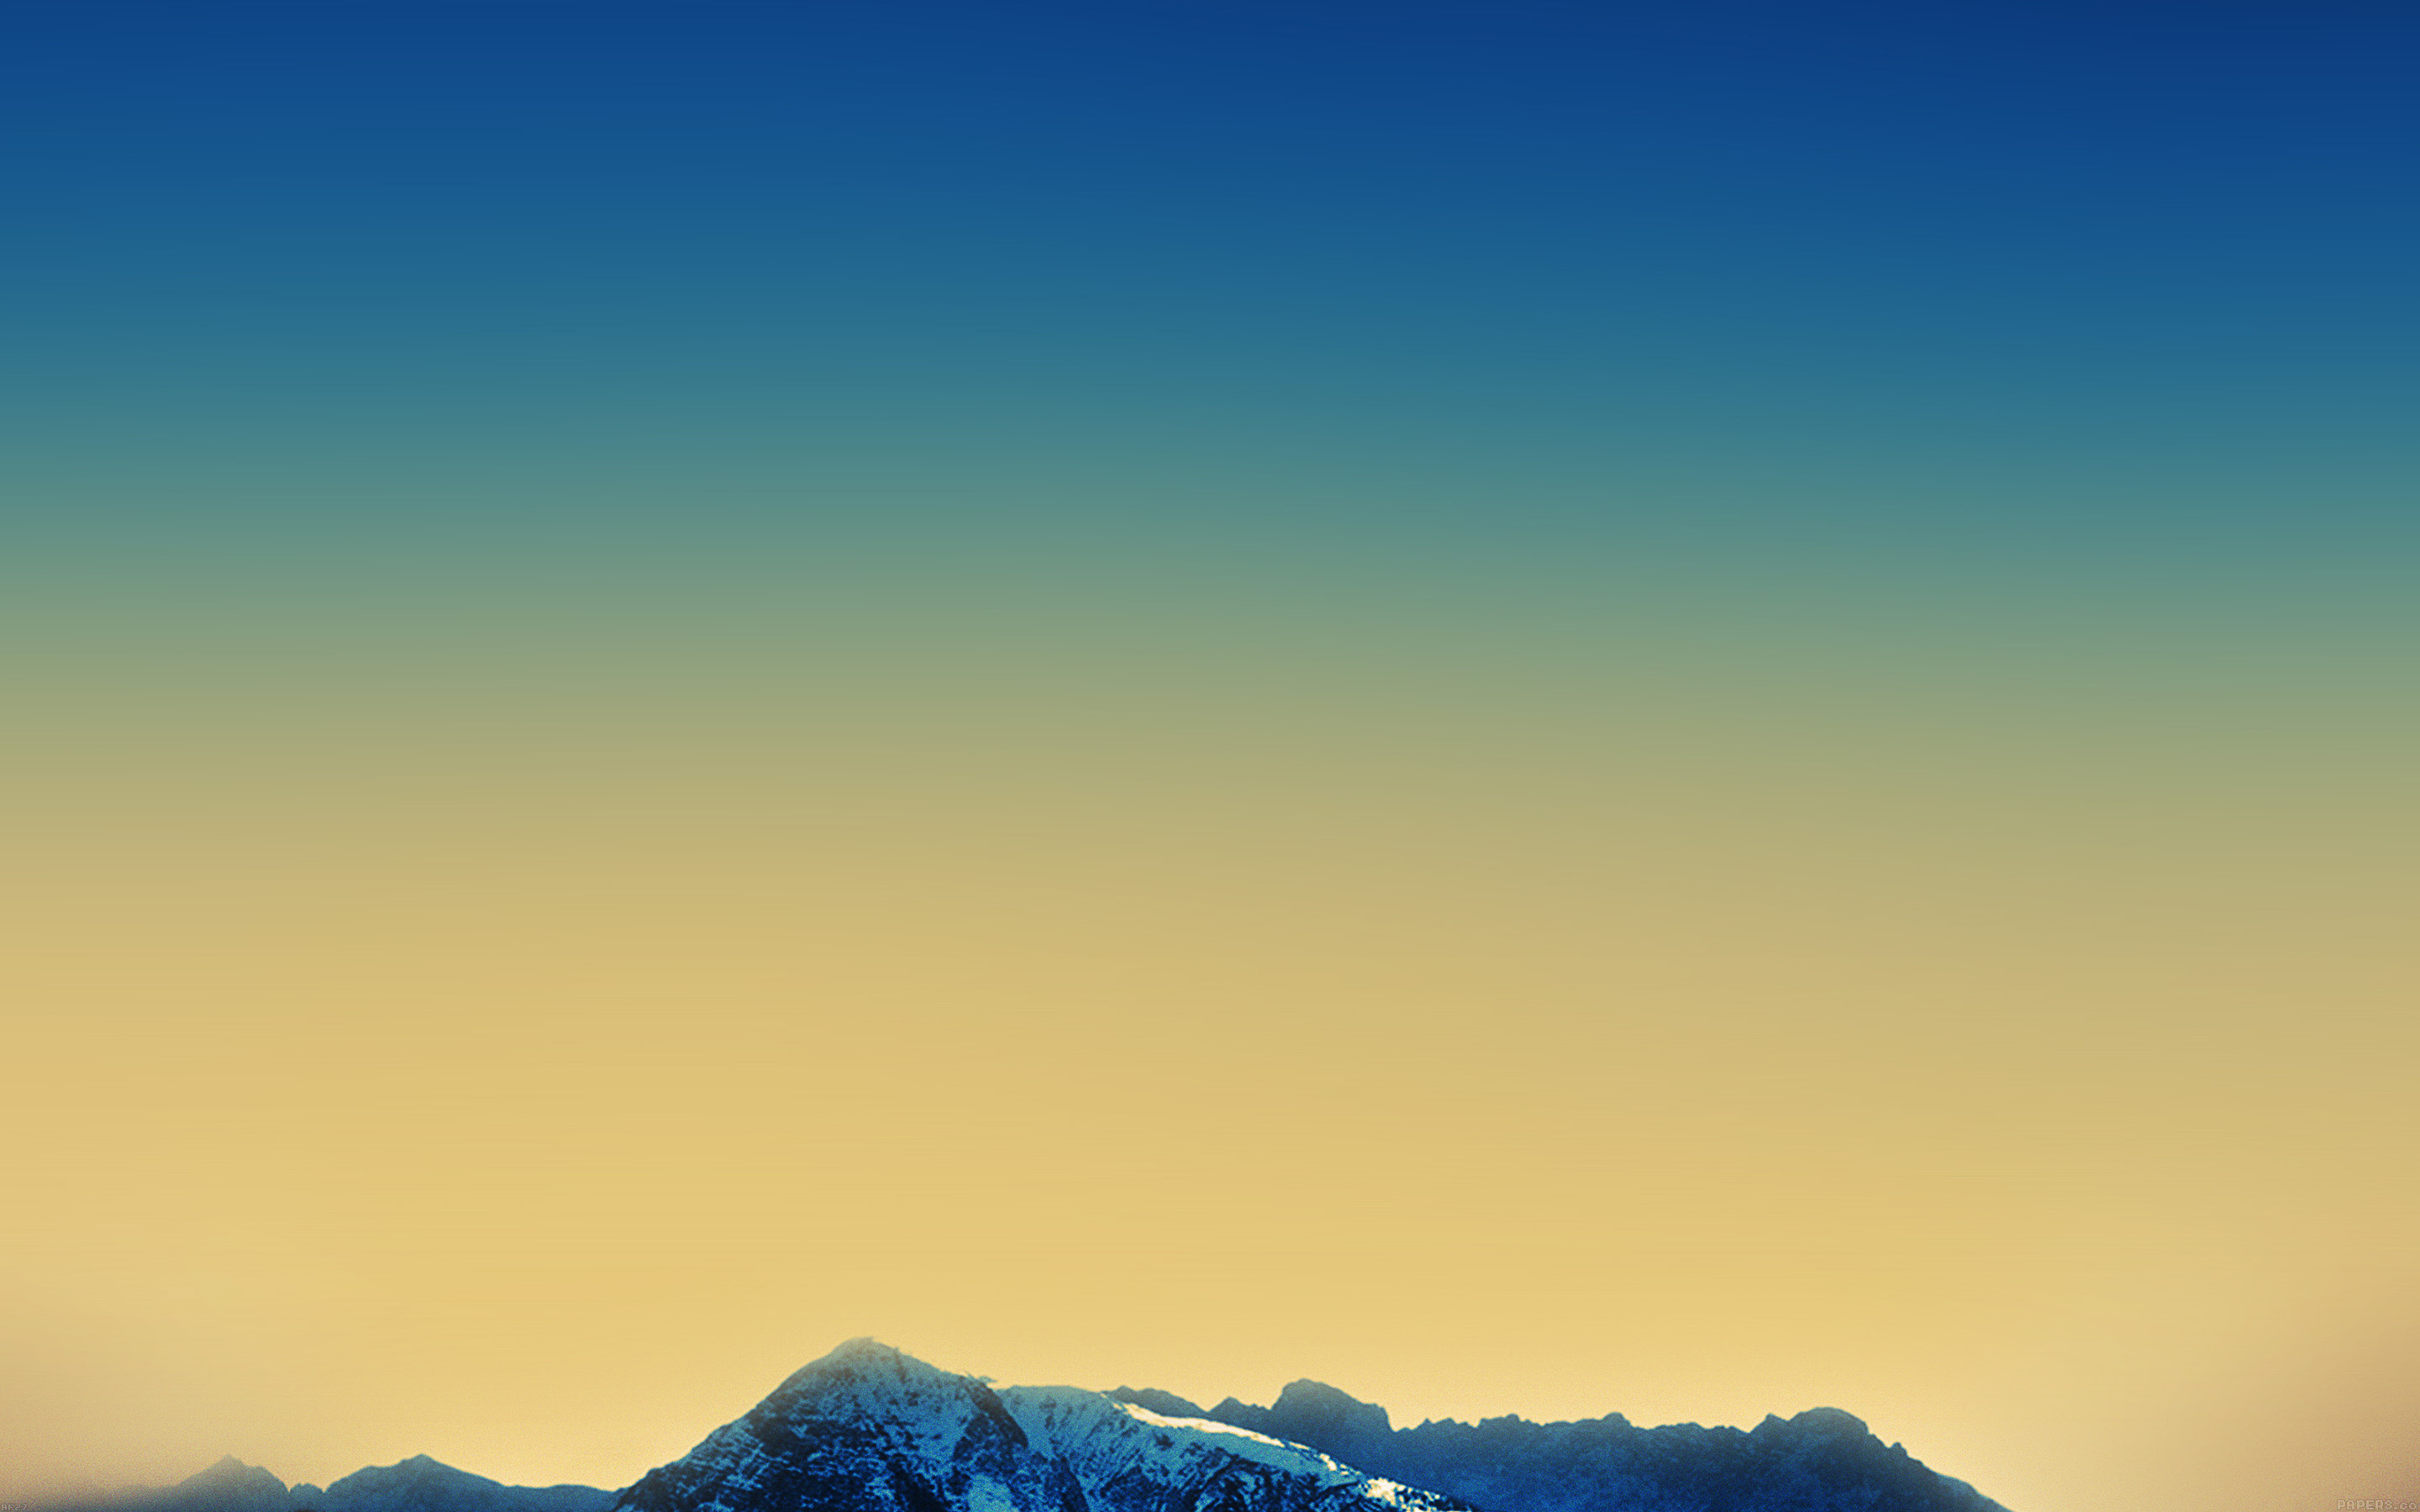 iPad Air 2 Official Mountain Apple Retina Background Wallpaper 2880x1800